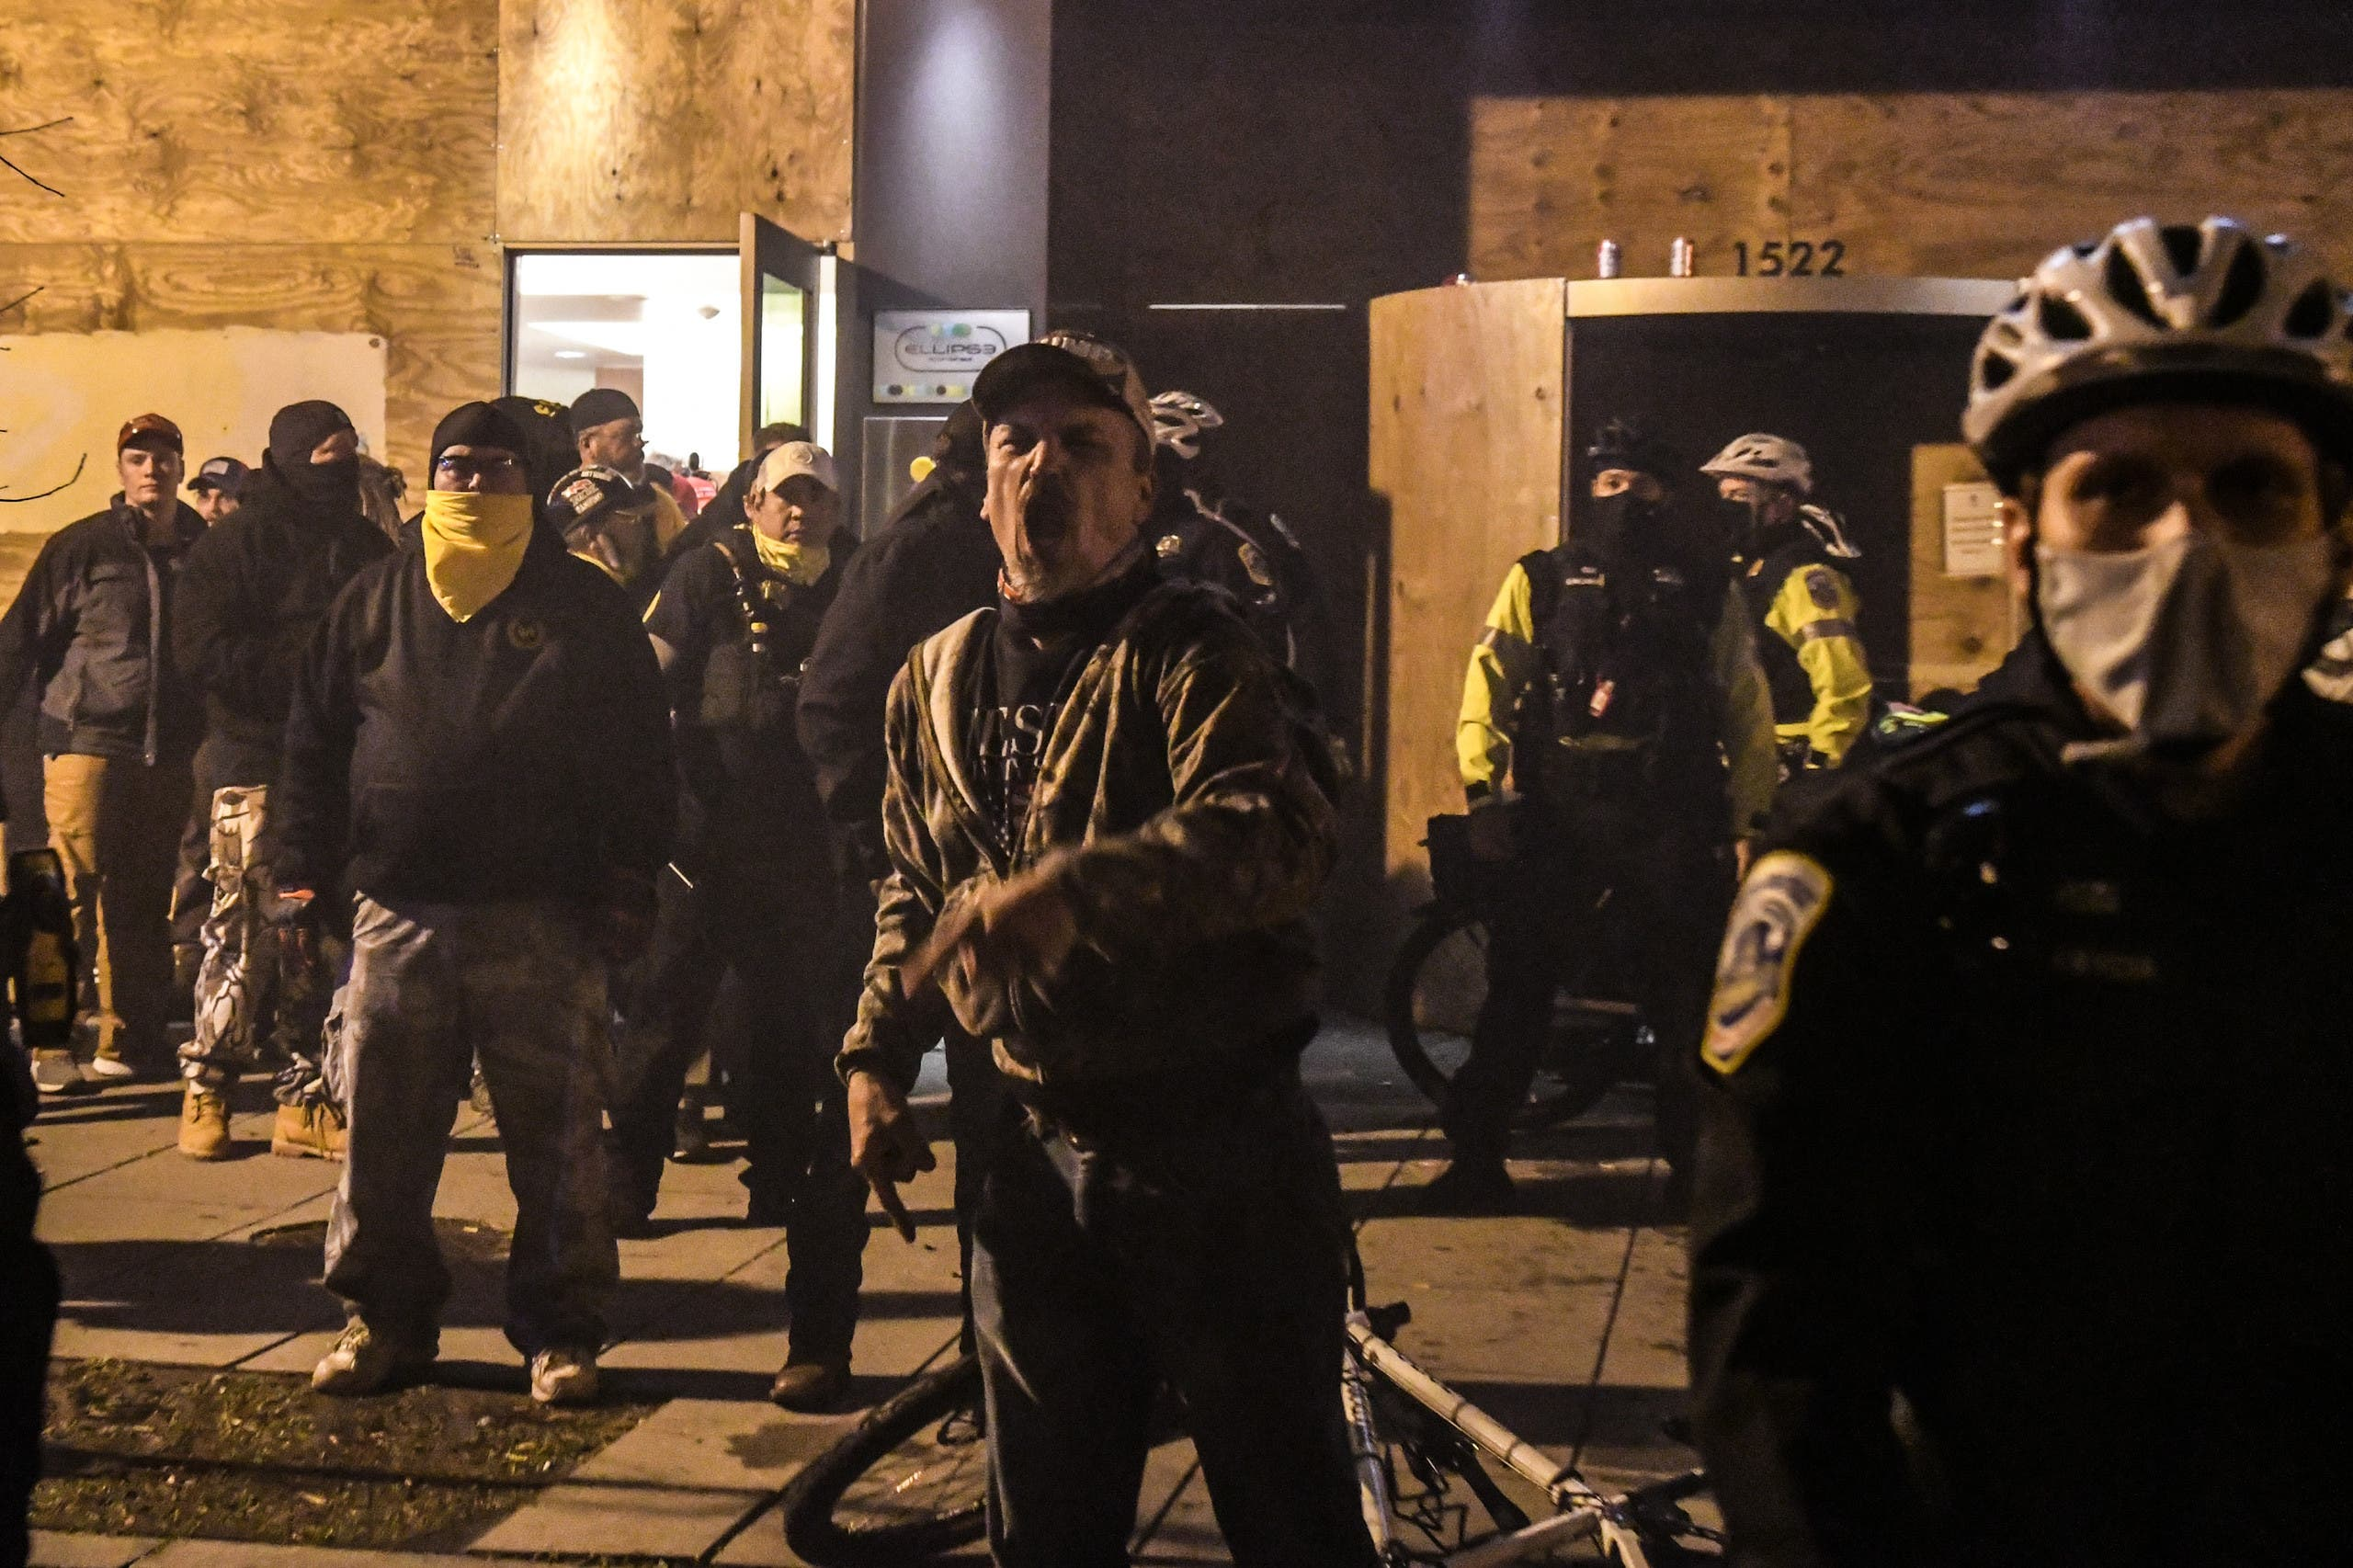 Members of the Proud Boys yell in front of a hotel during a protest on December 12, 2020 in Washington, DC.  (AFP)